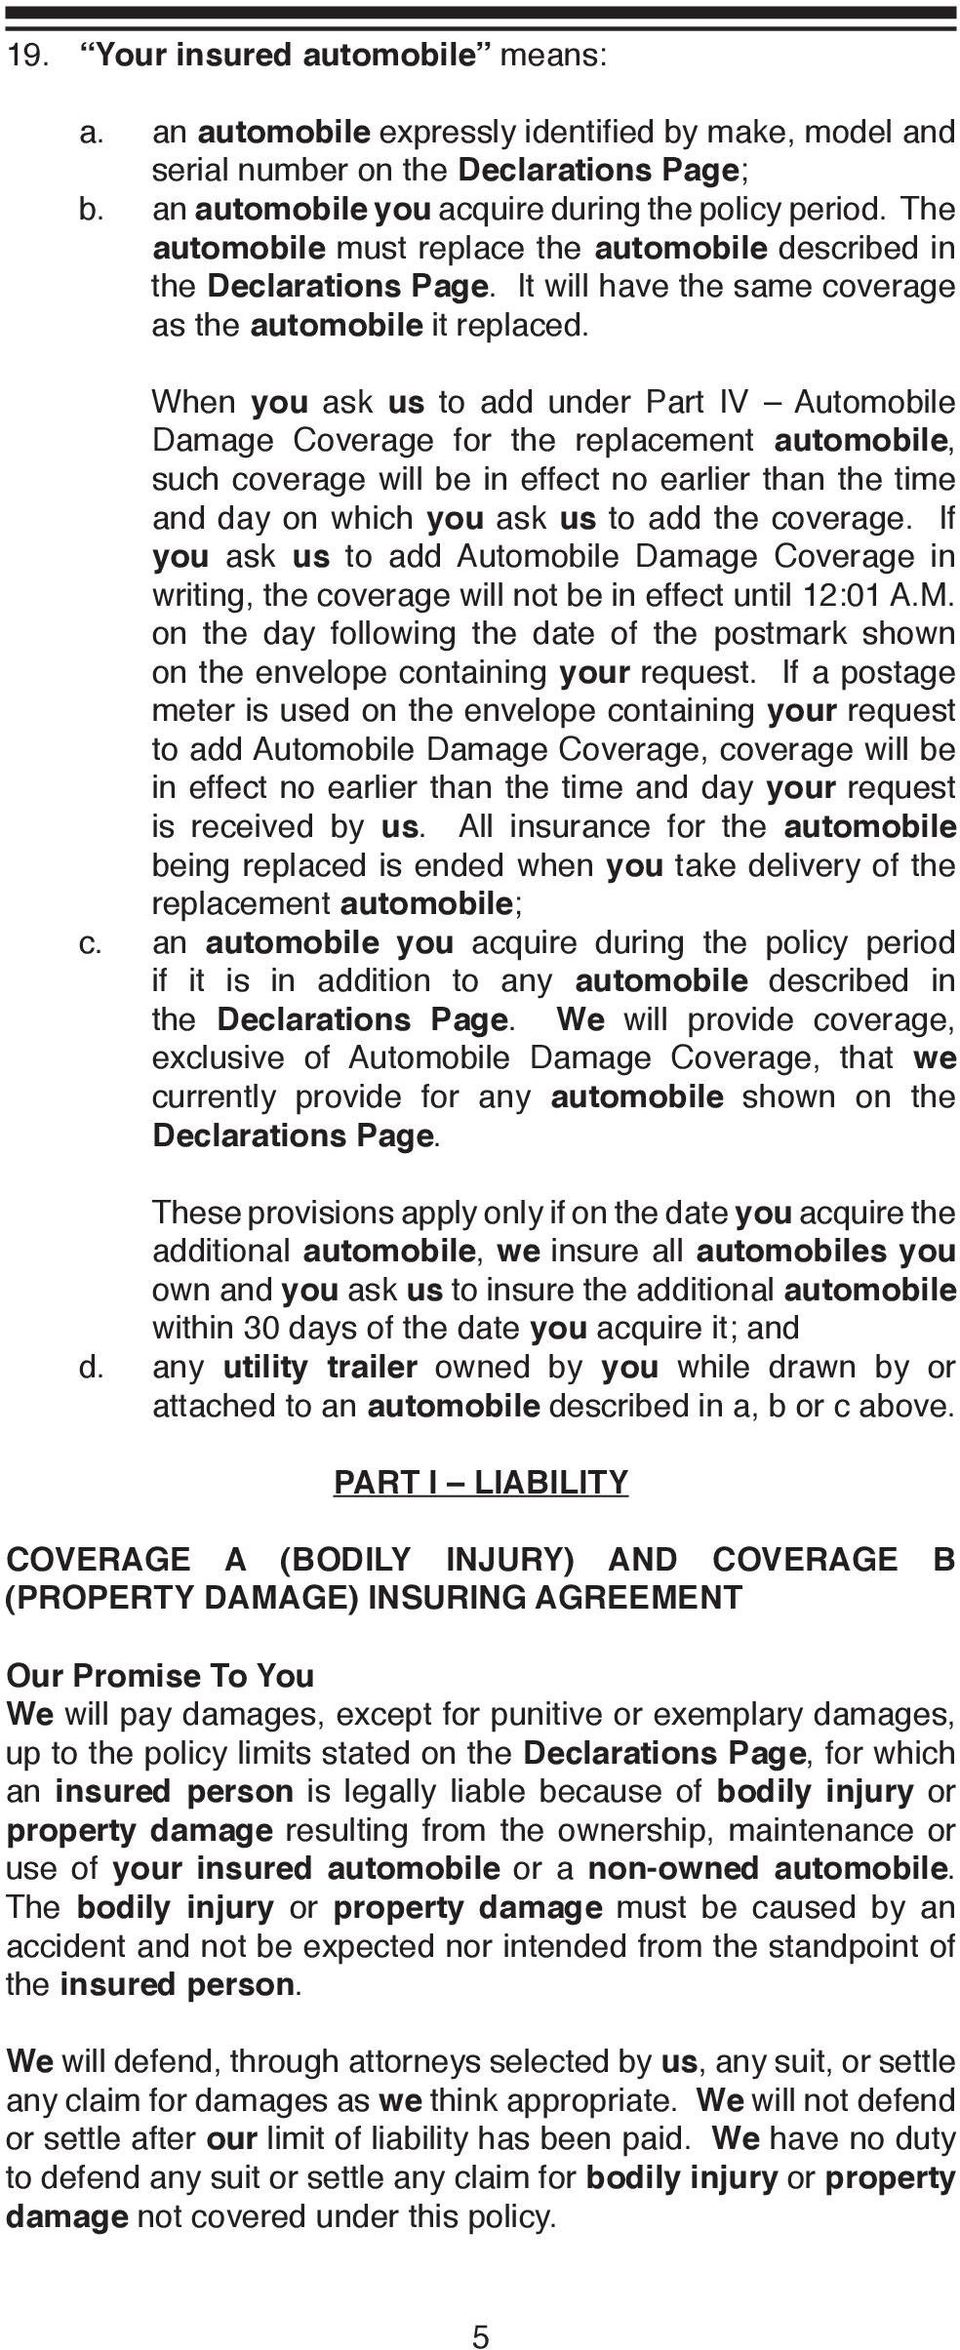 When you ask us to add under Part IV Automobile Damage Coverage for the replacement automobile, such coverage will be in effect no earlier than the time and day on which you ask us to add the